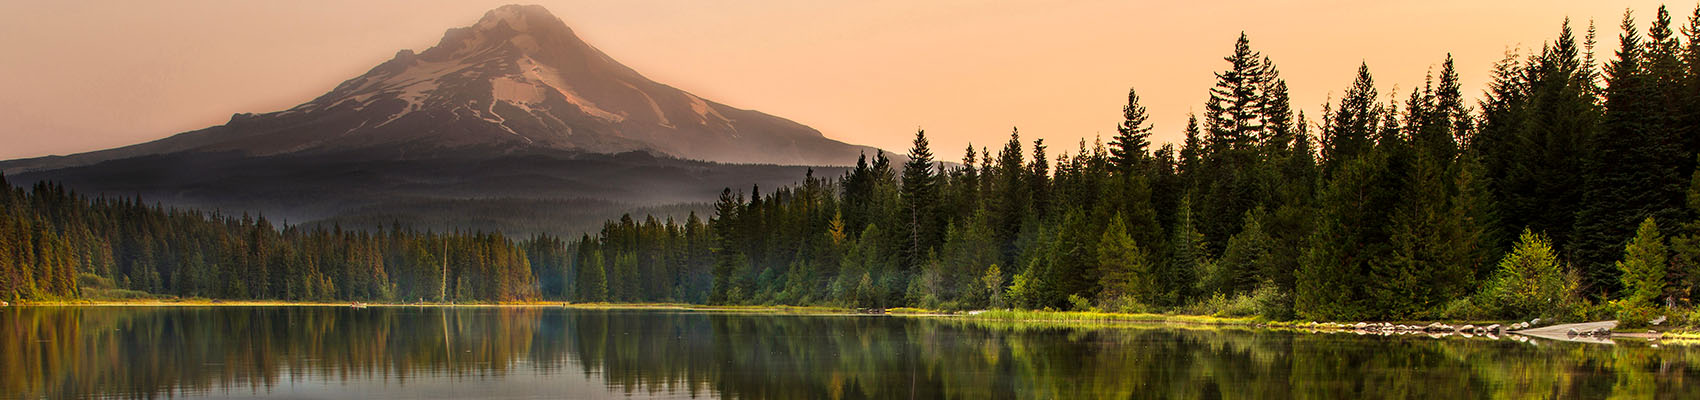 mountain behind a forest lake